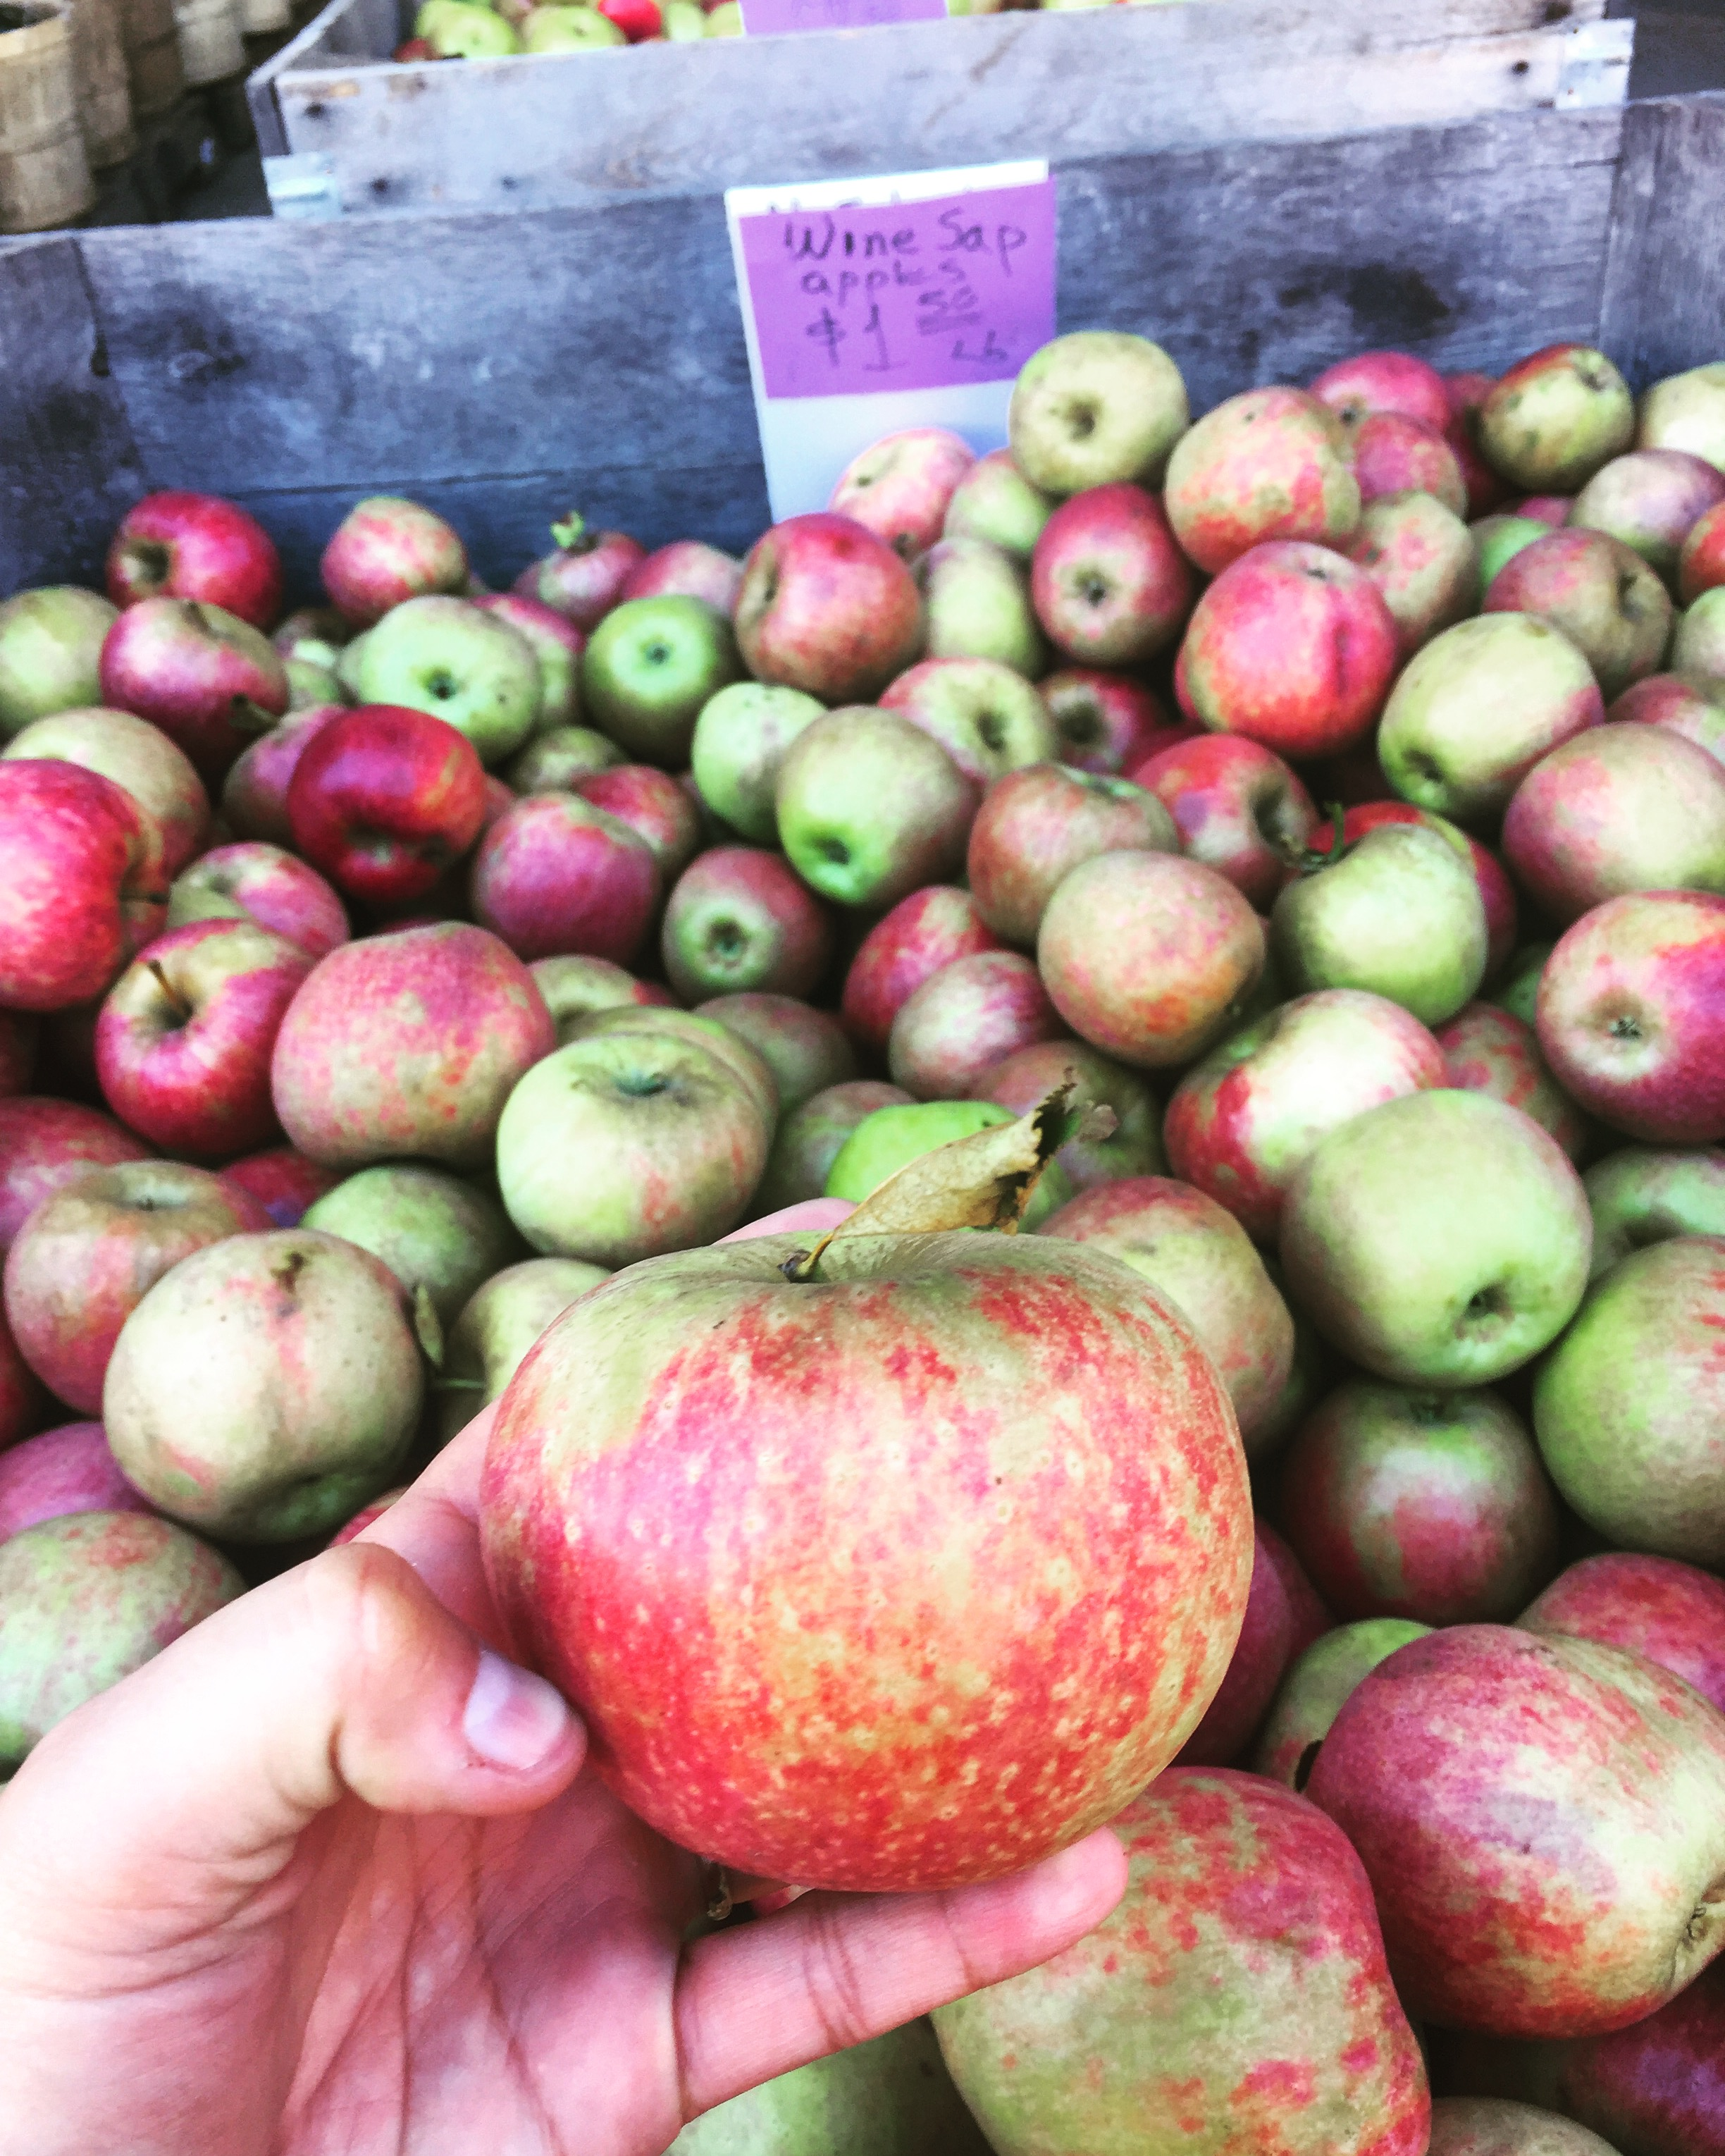 Our fav apple of the season, the Winesap from Smiley's Farm